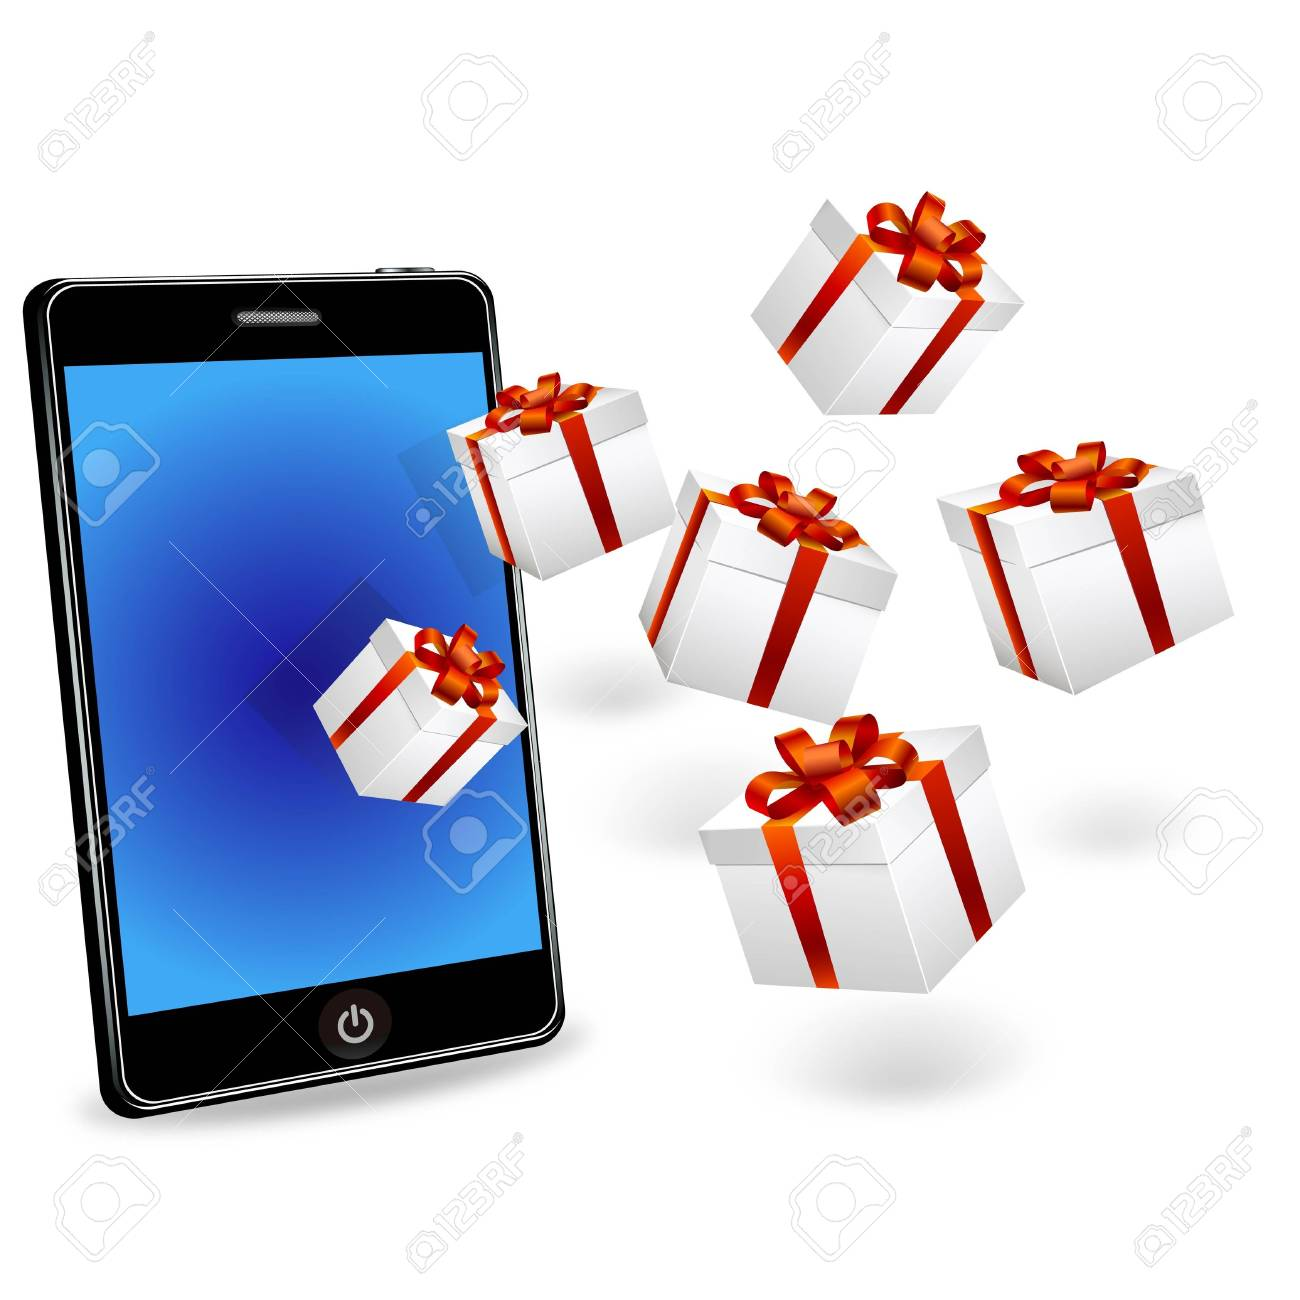 smart phone and gift boxes Stock Photo - 11479670